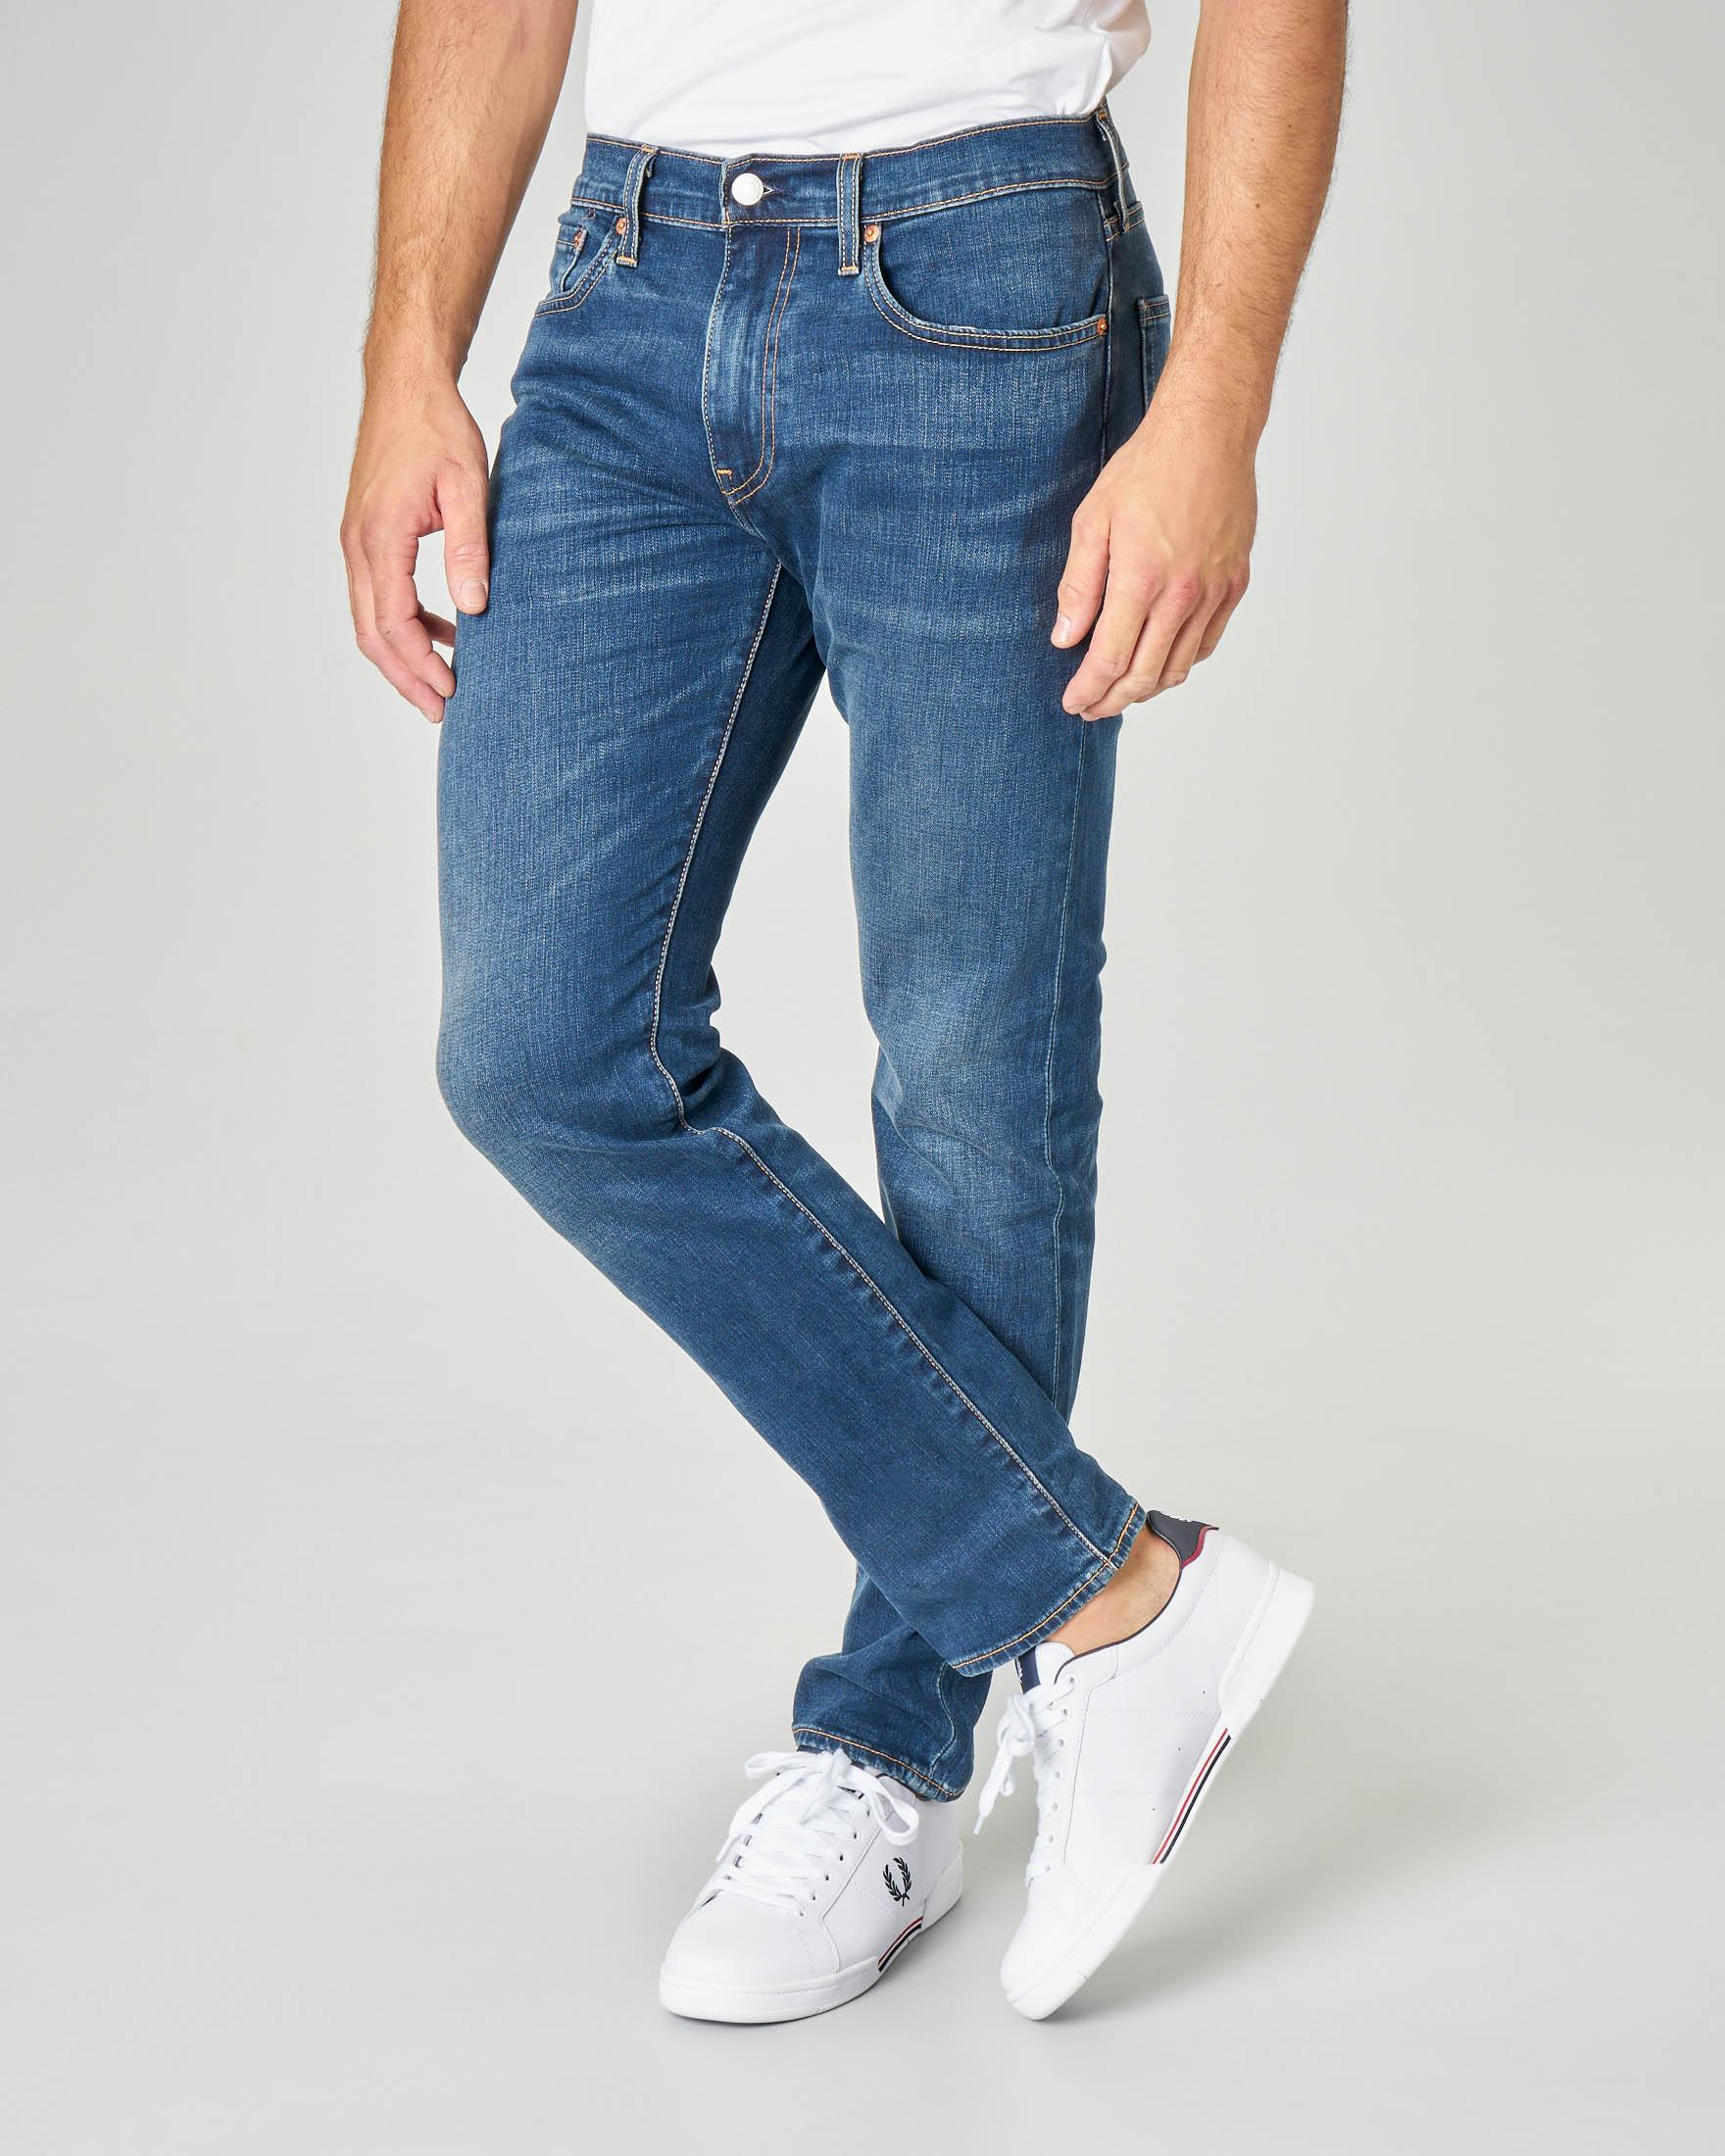 Jeans 502 regular lavaggio blu scuro con baffature